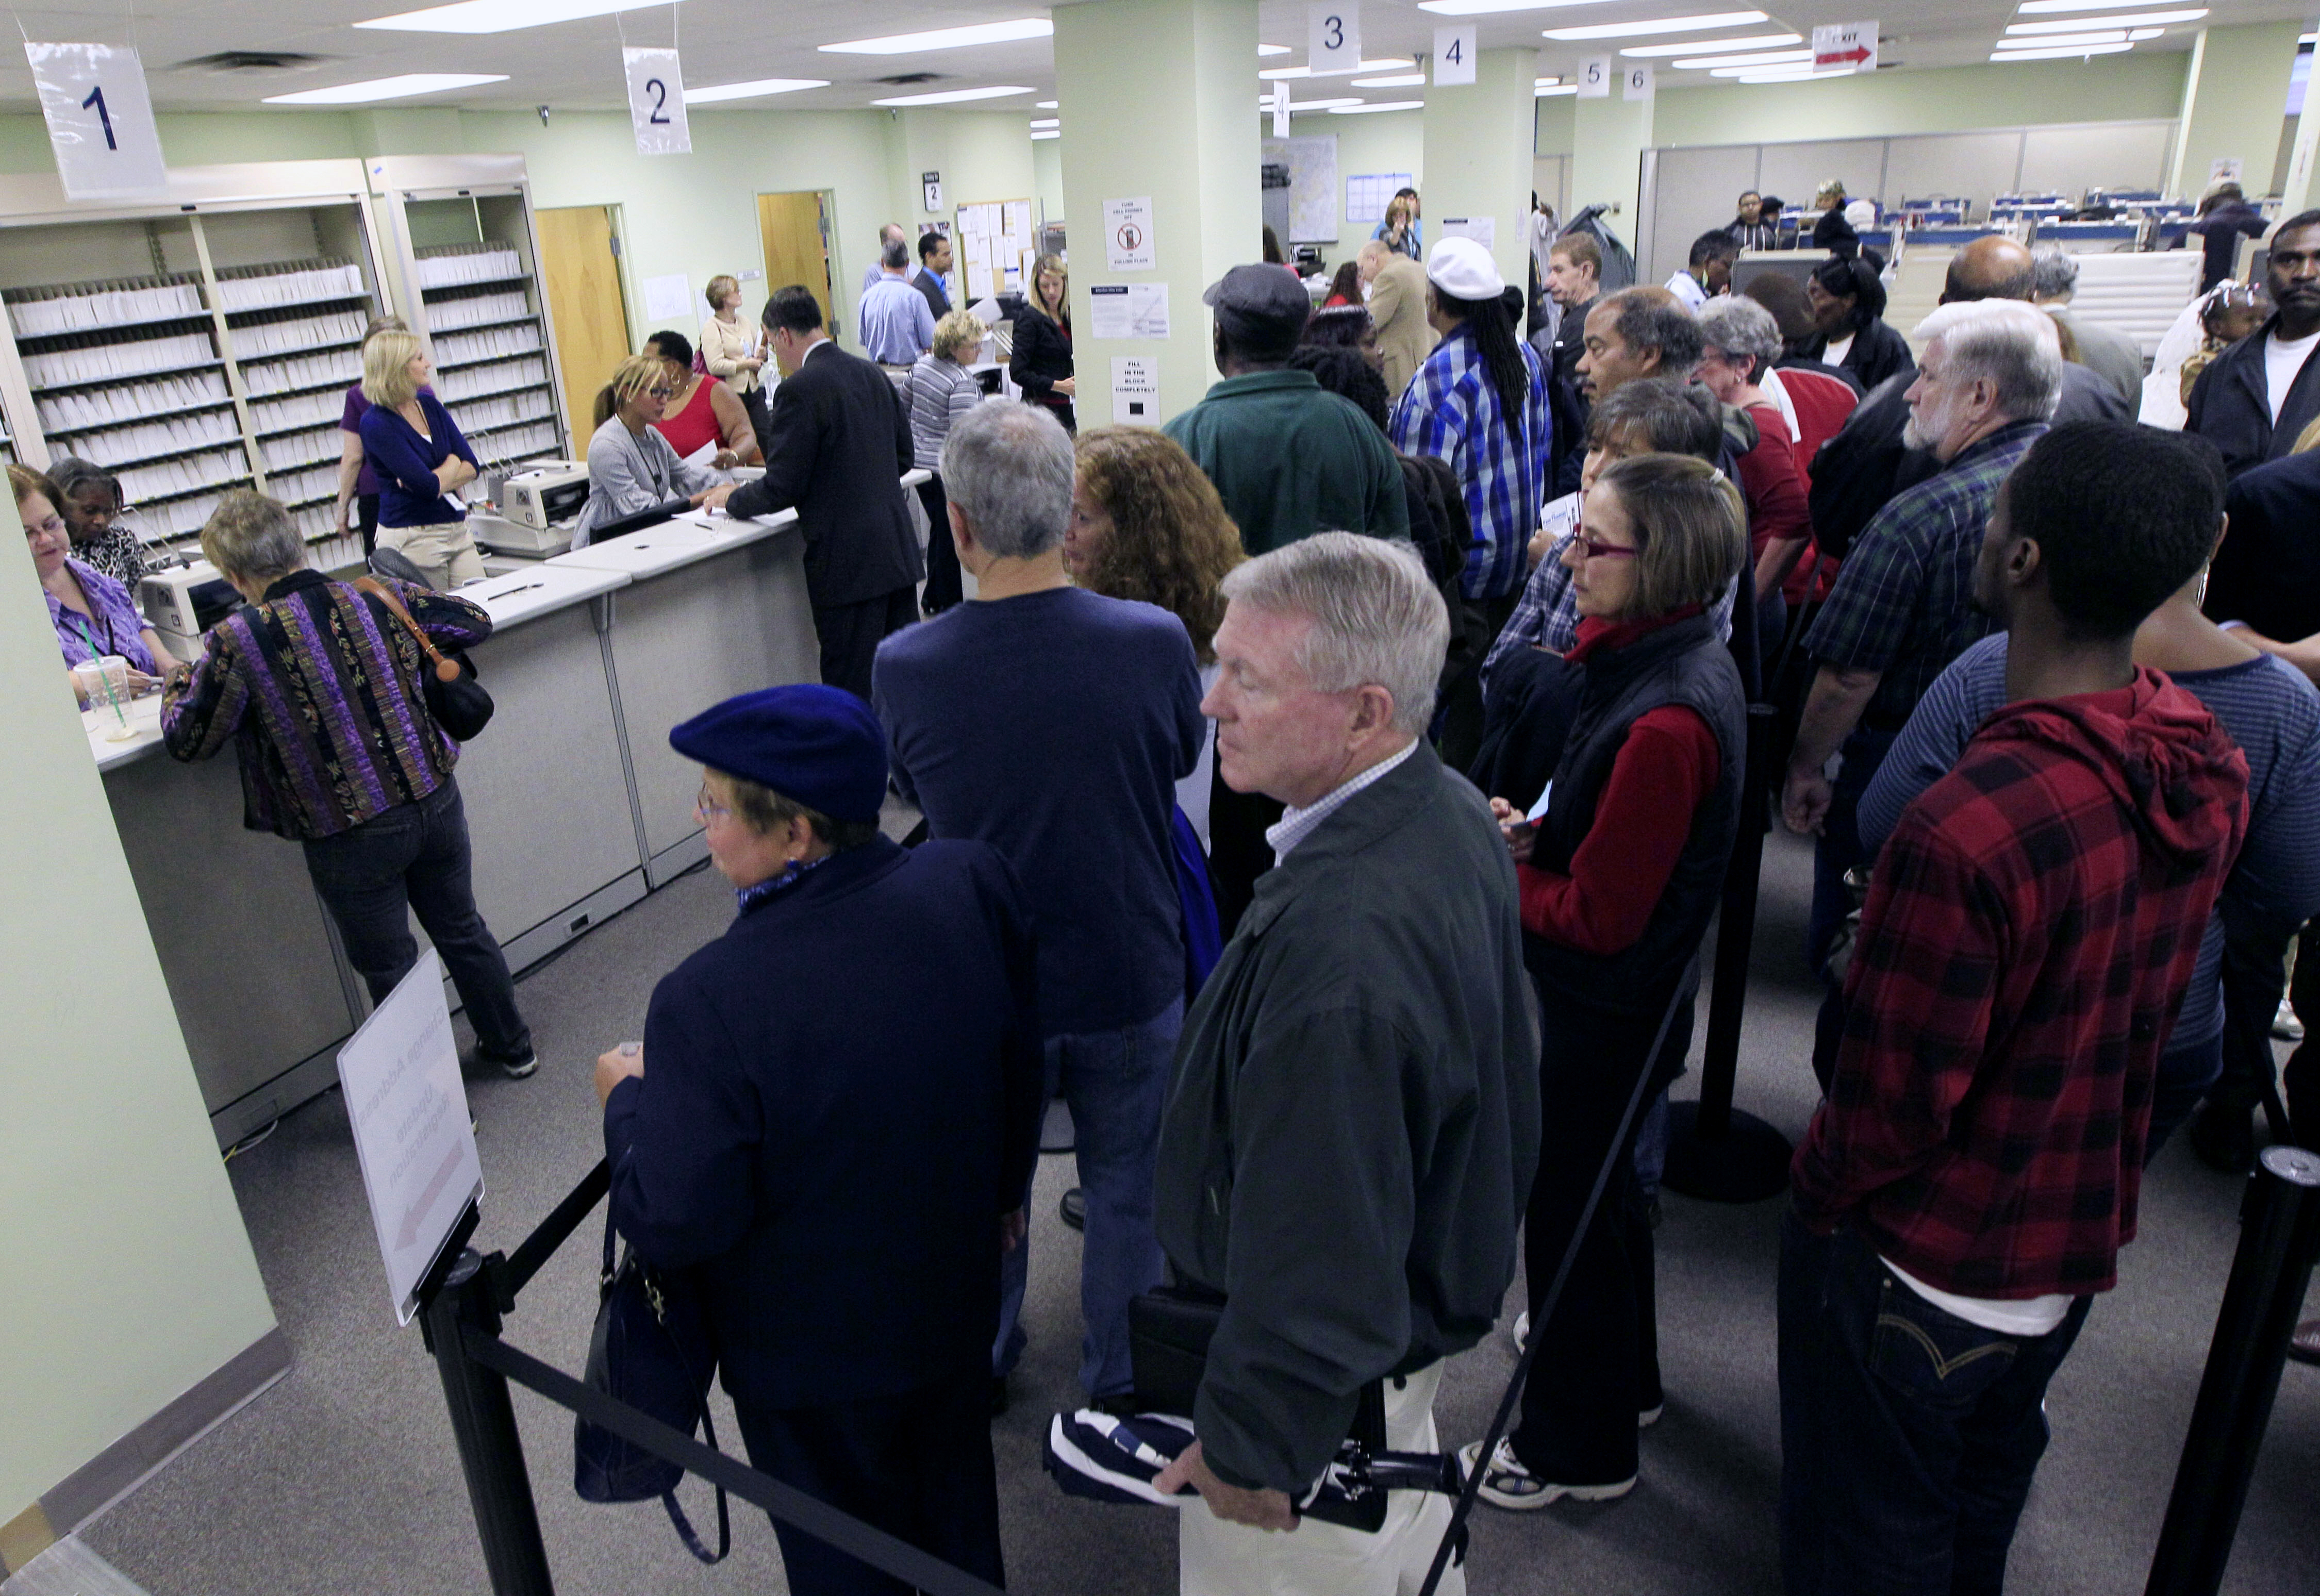 This Oct. 2, 2012 file photo shows voters waiting in line to pick up their ballots inside the Hamilton County Board of Elections after it opened for early voting, in Cincinnati.